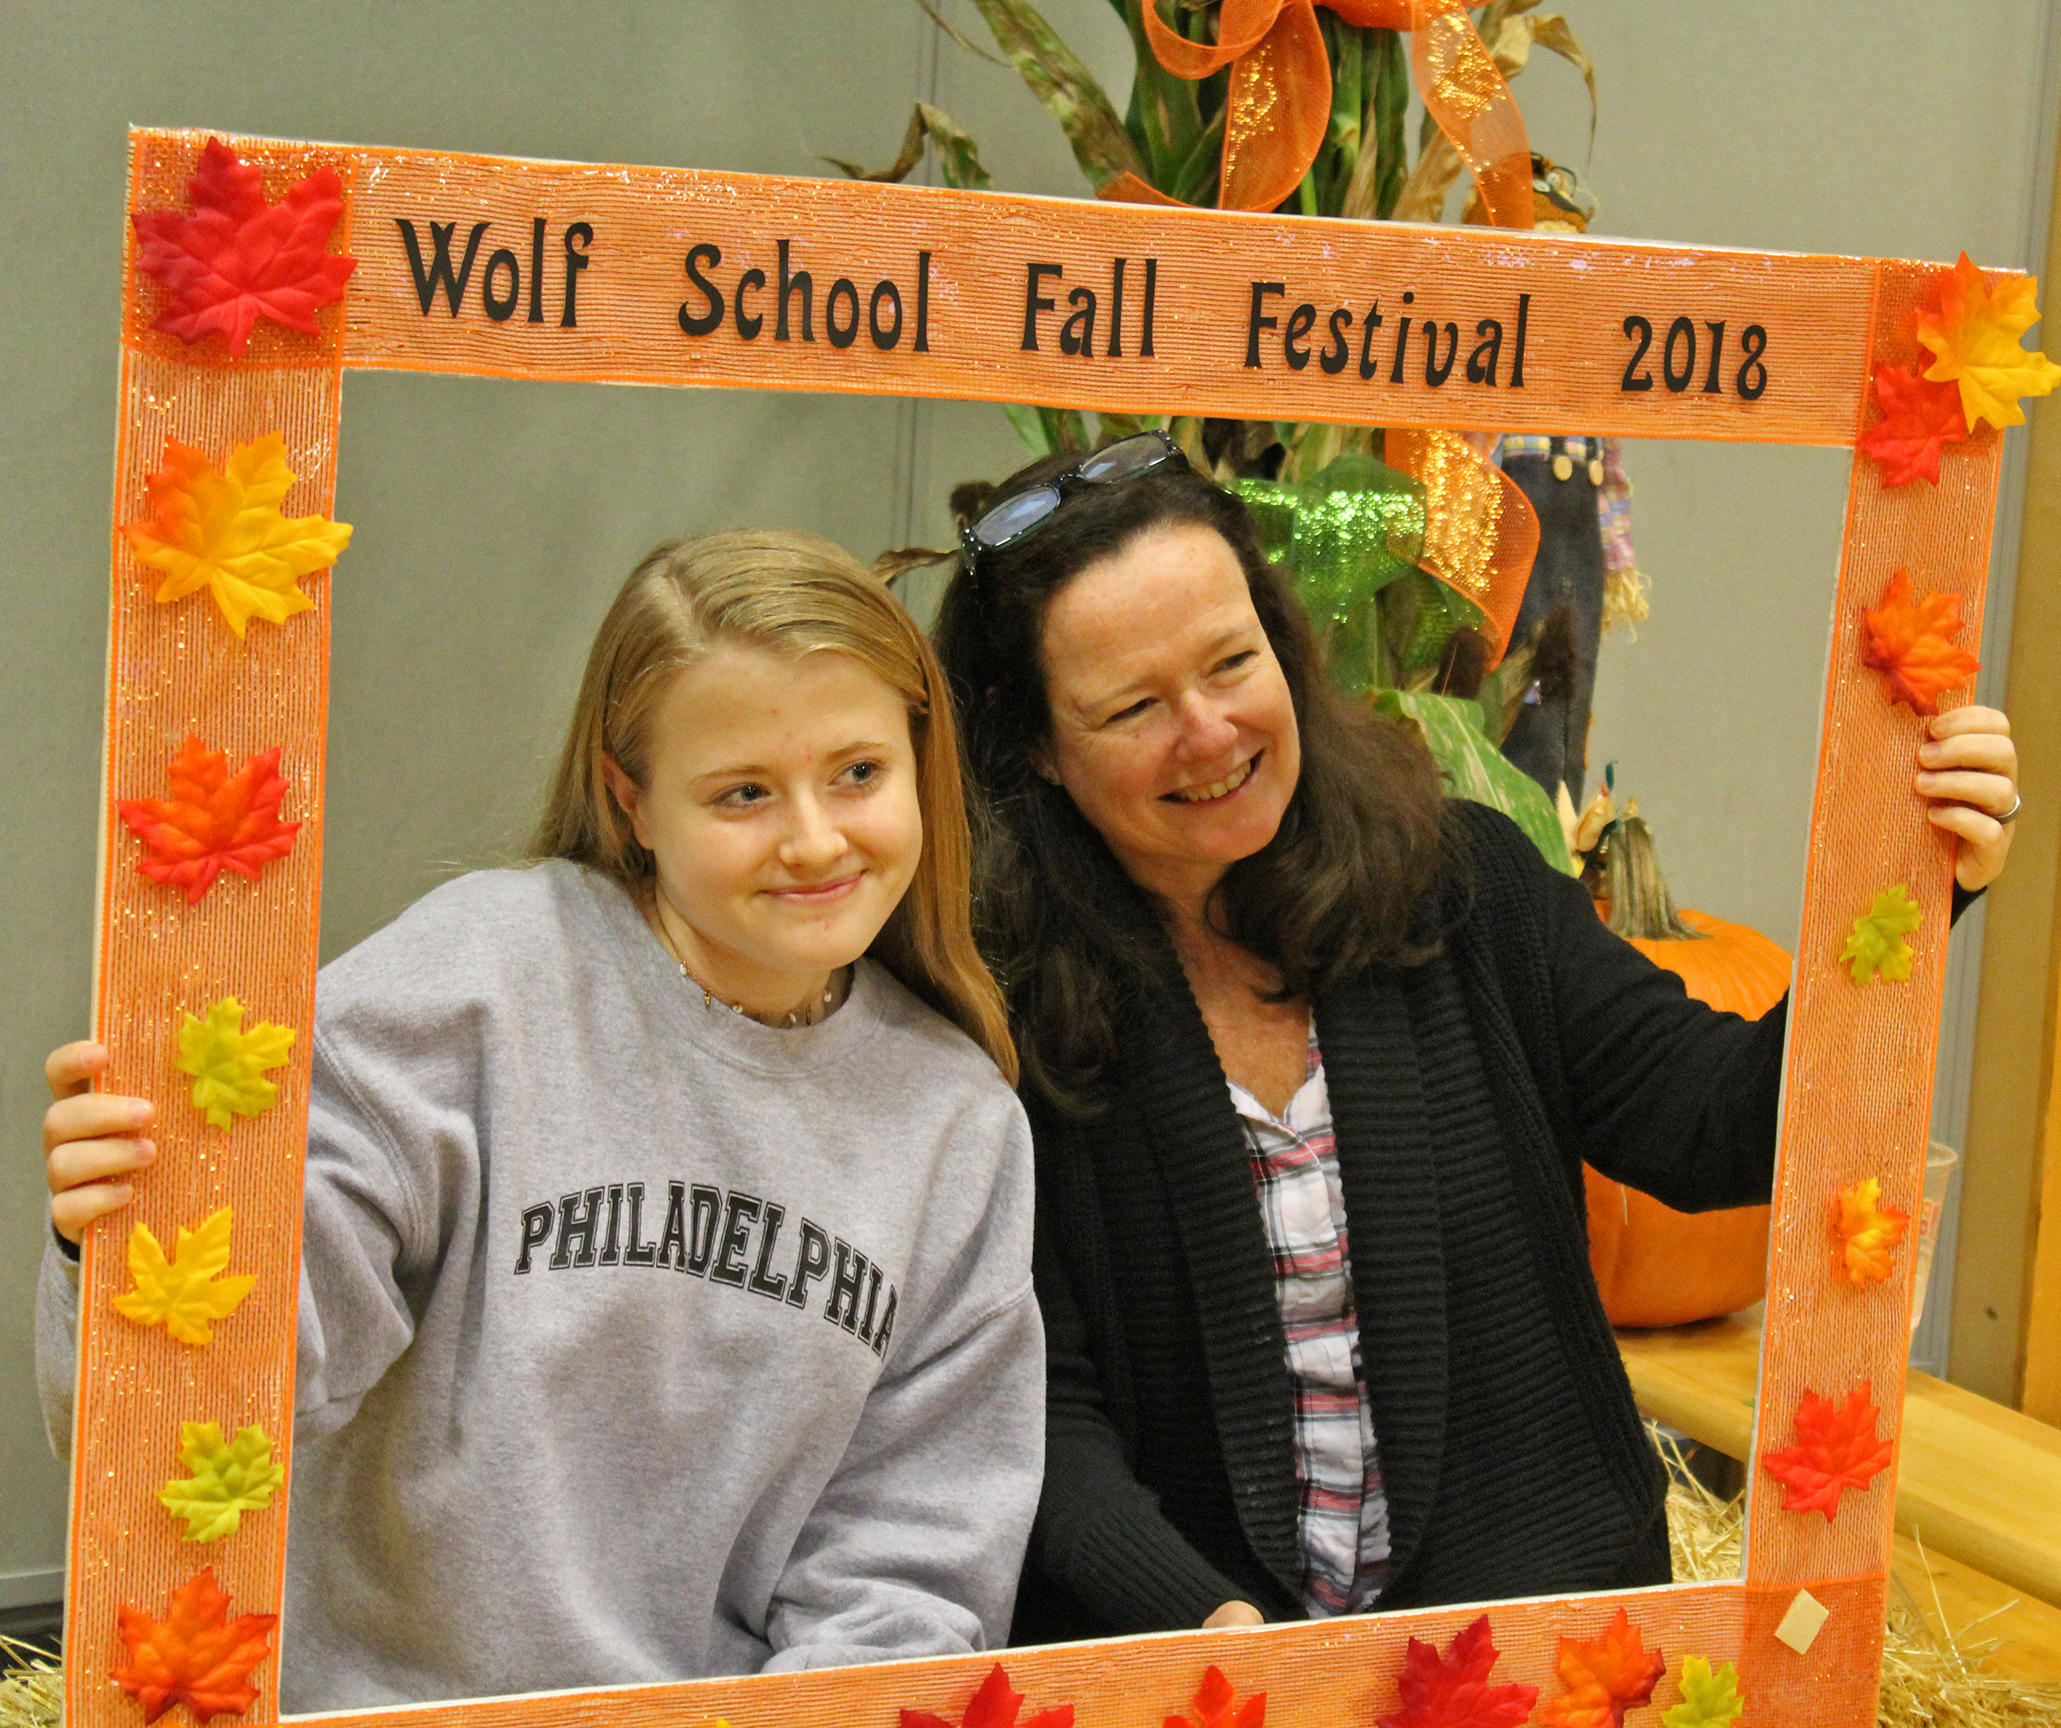 There were smiles all around at the Fall Festival!